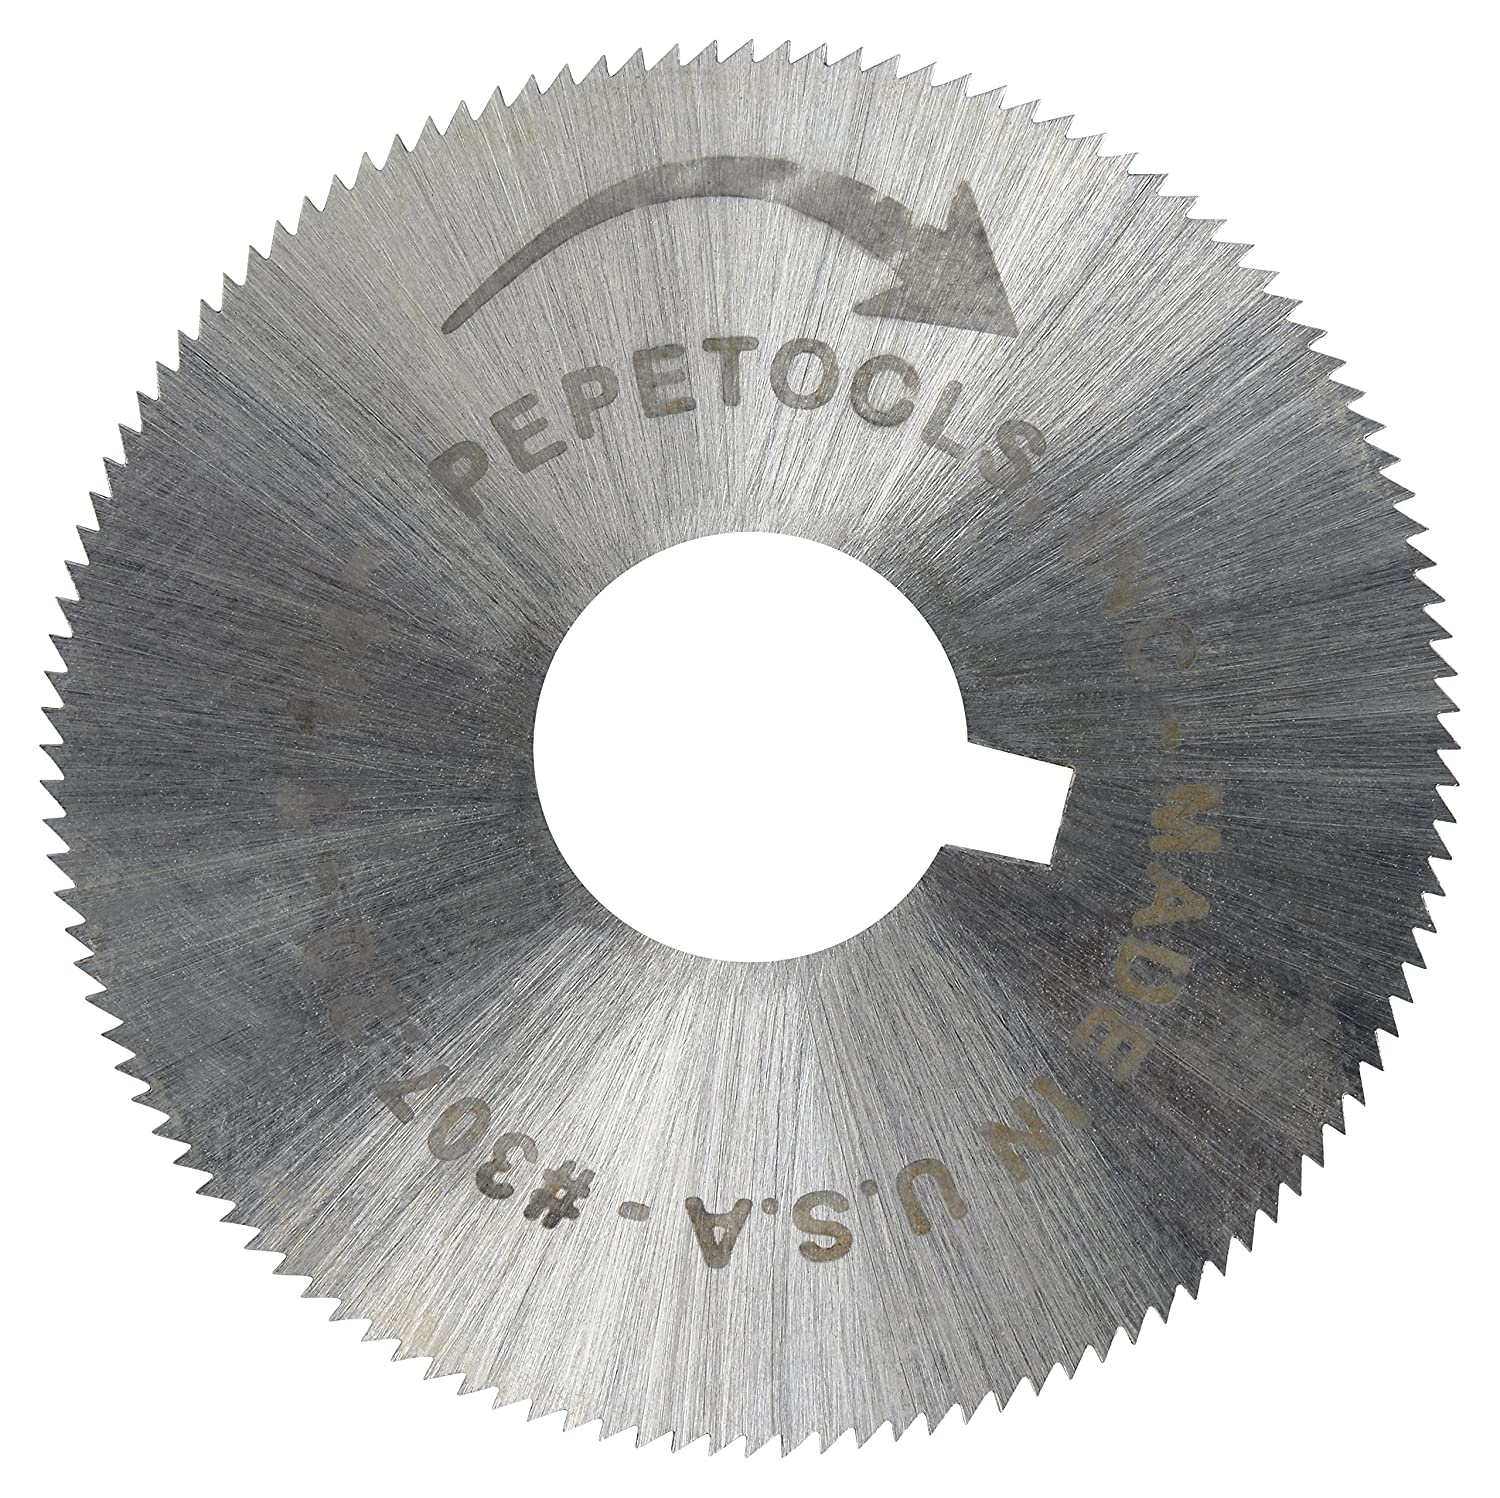 Pepetools JRM2 Jump Ring Maker Replacement Blade 1-1//4-Inch